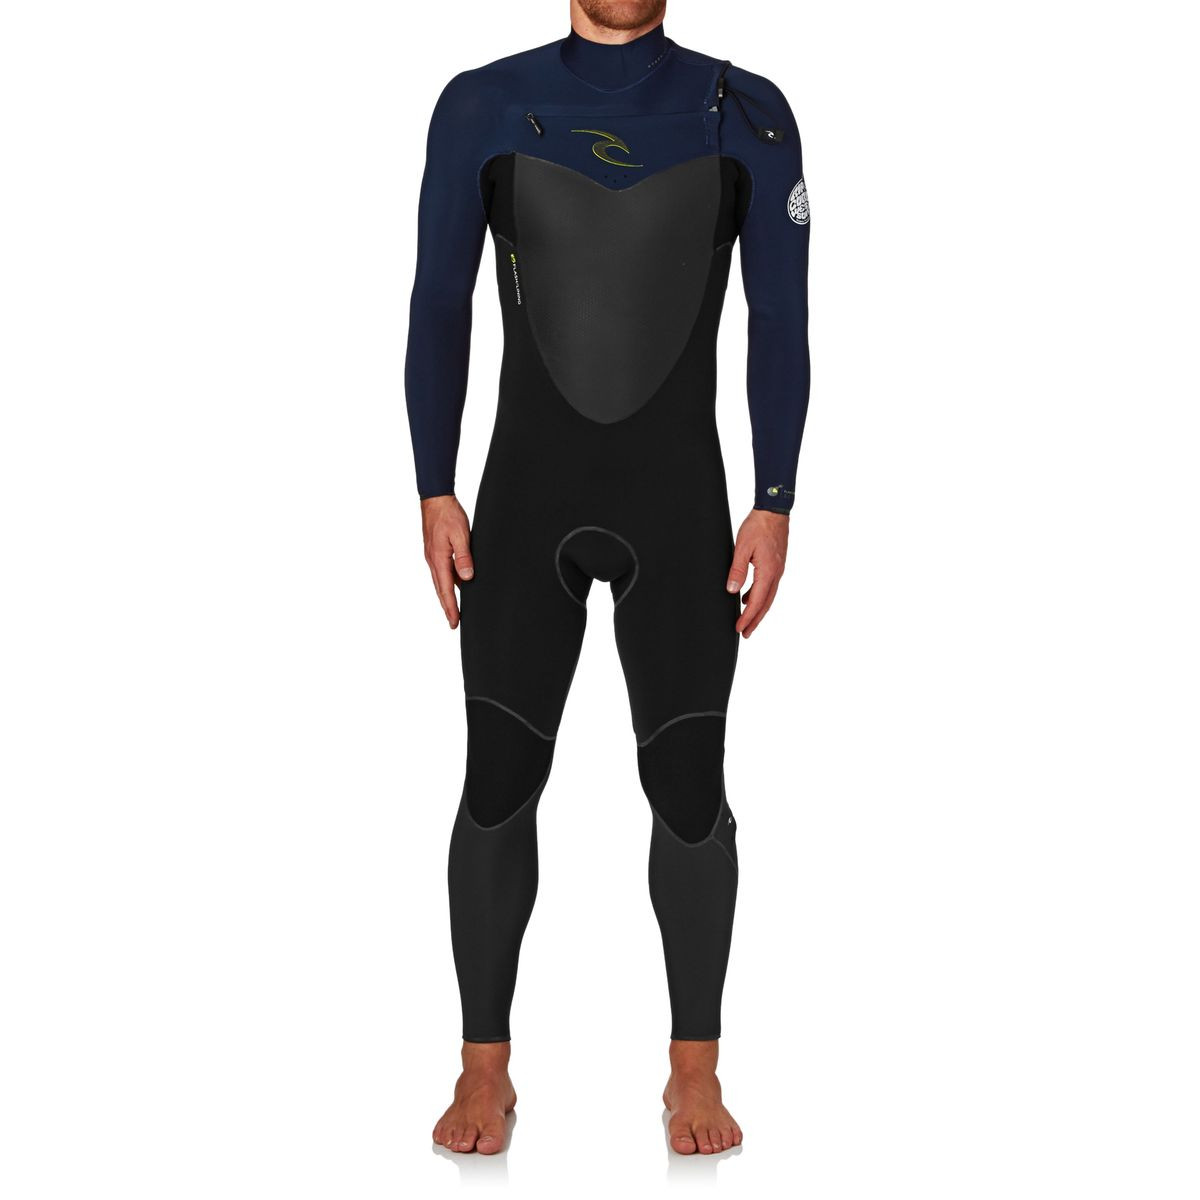 Rip Curl Flashbomb 3/2mm 2017 Chest Zip Wetsuit - Navy